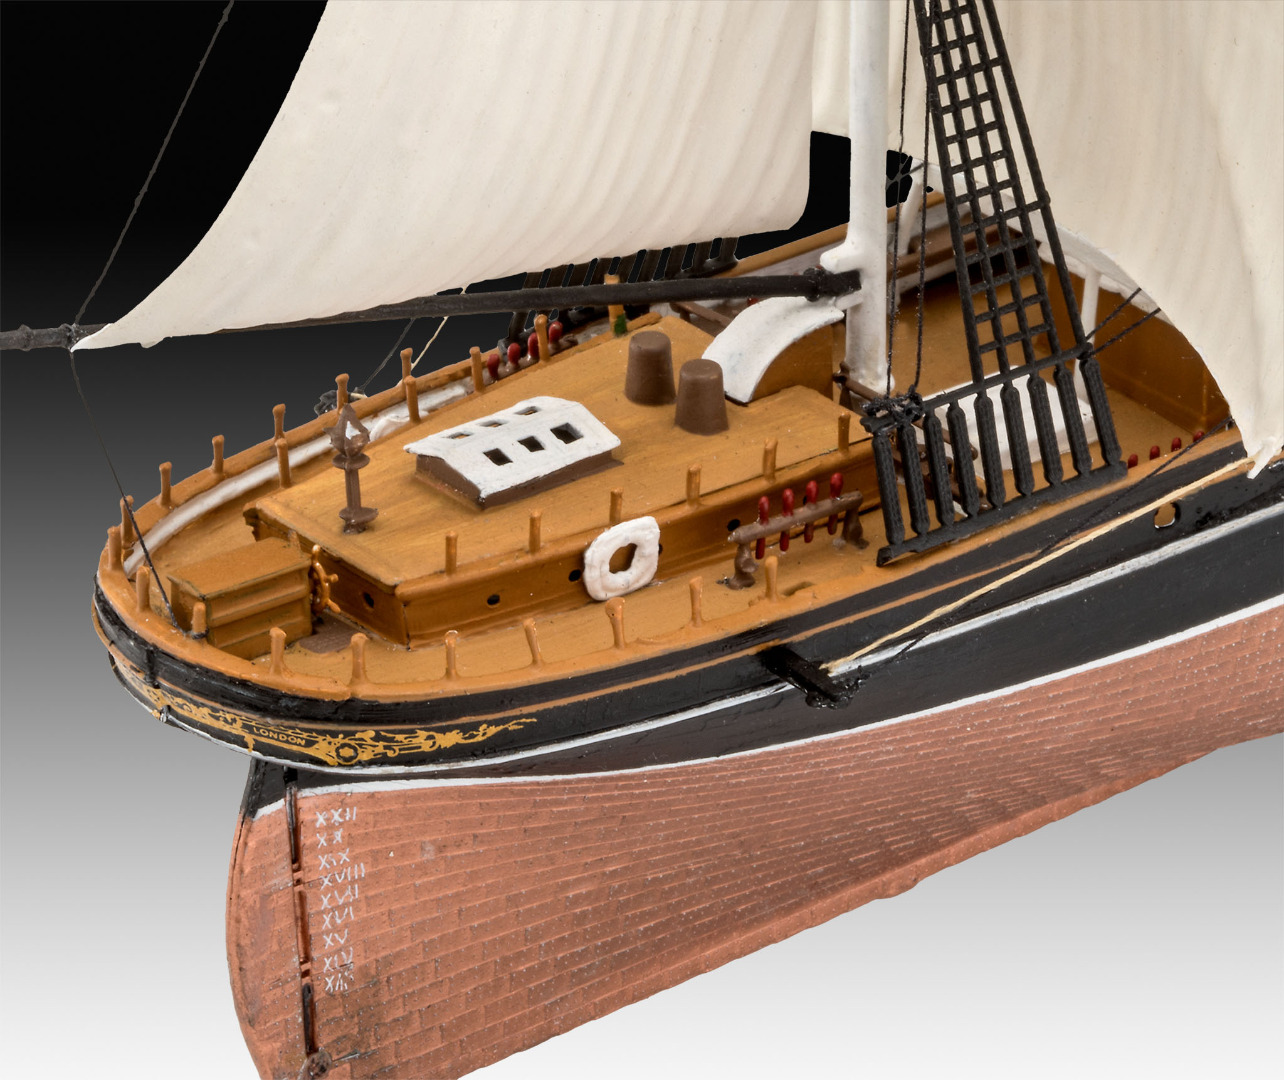 Revell Model Gift Set Cutty Sark 150th Anniversary Scale 1:220